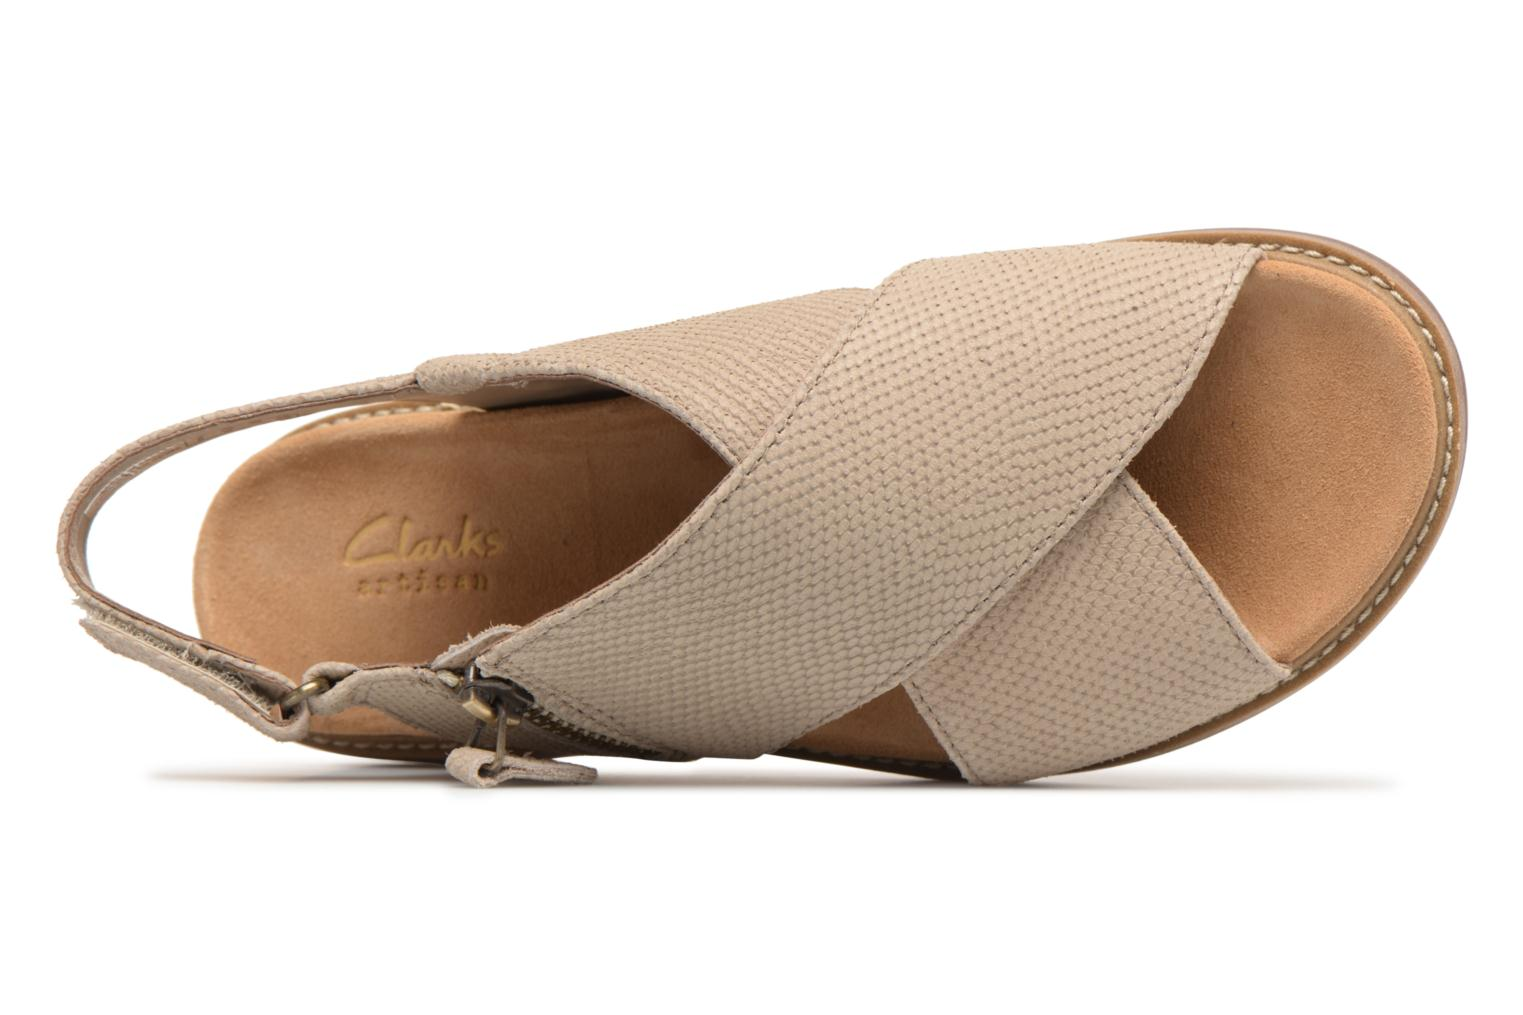 Clarks Corsio Sand Sand Clarks Calm Calm Leather Clarks Corsio Leather U4wq4gdR